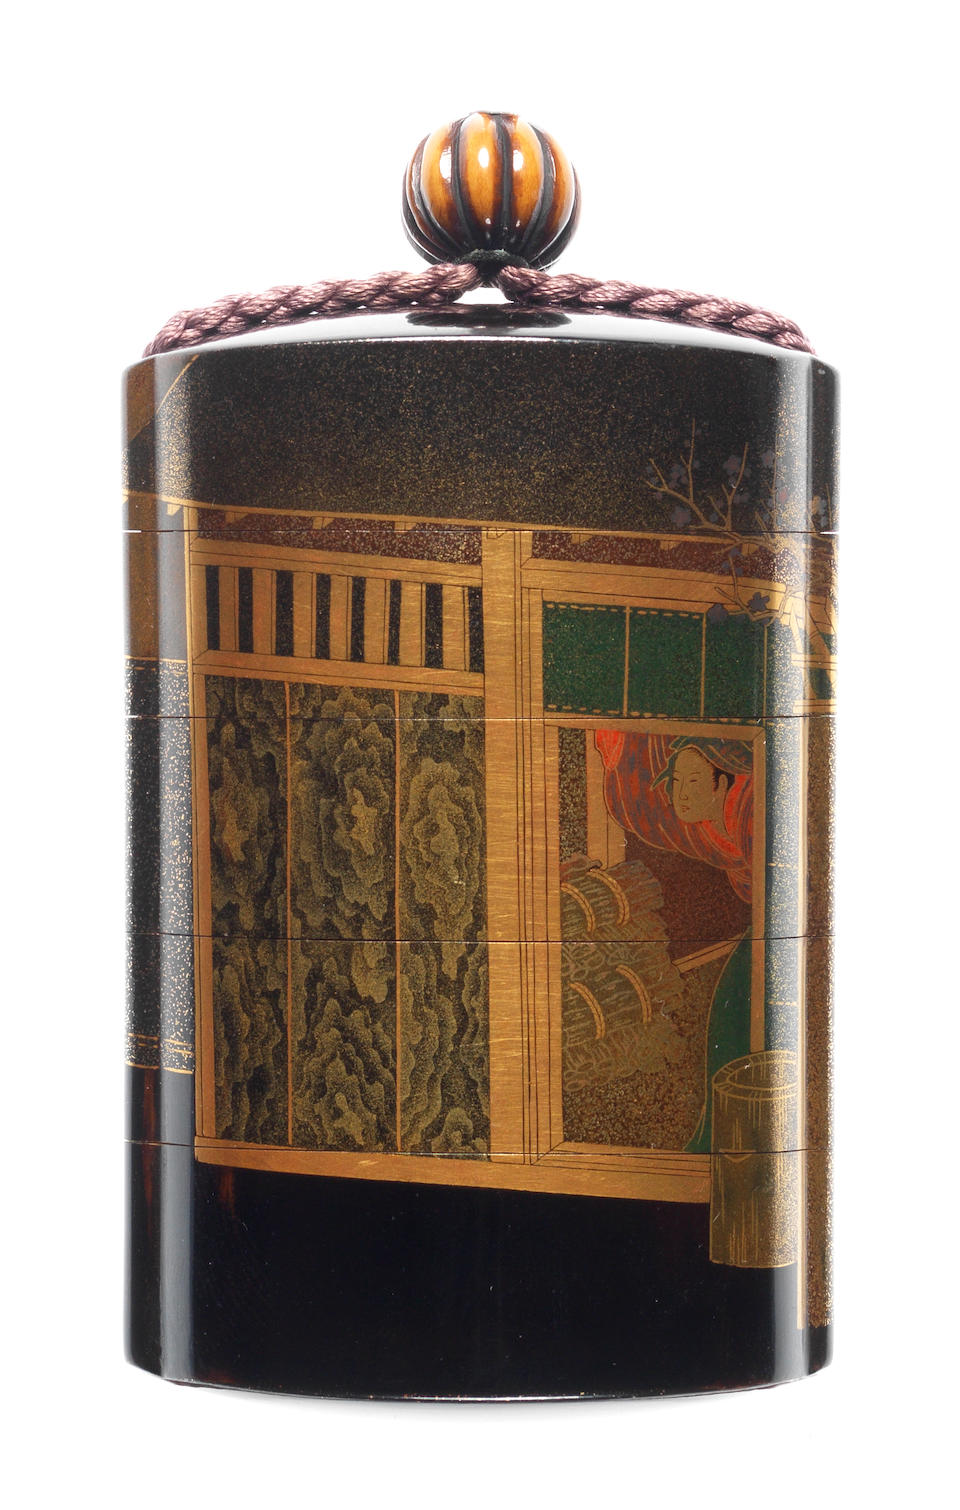 A black lacquer four-case inro  By Shiomi Masanari, 19th century